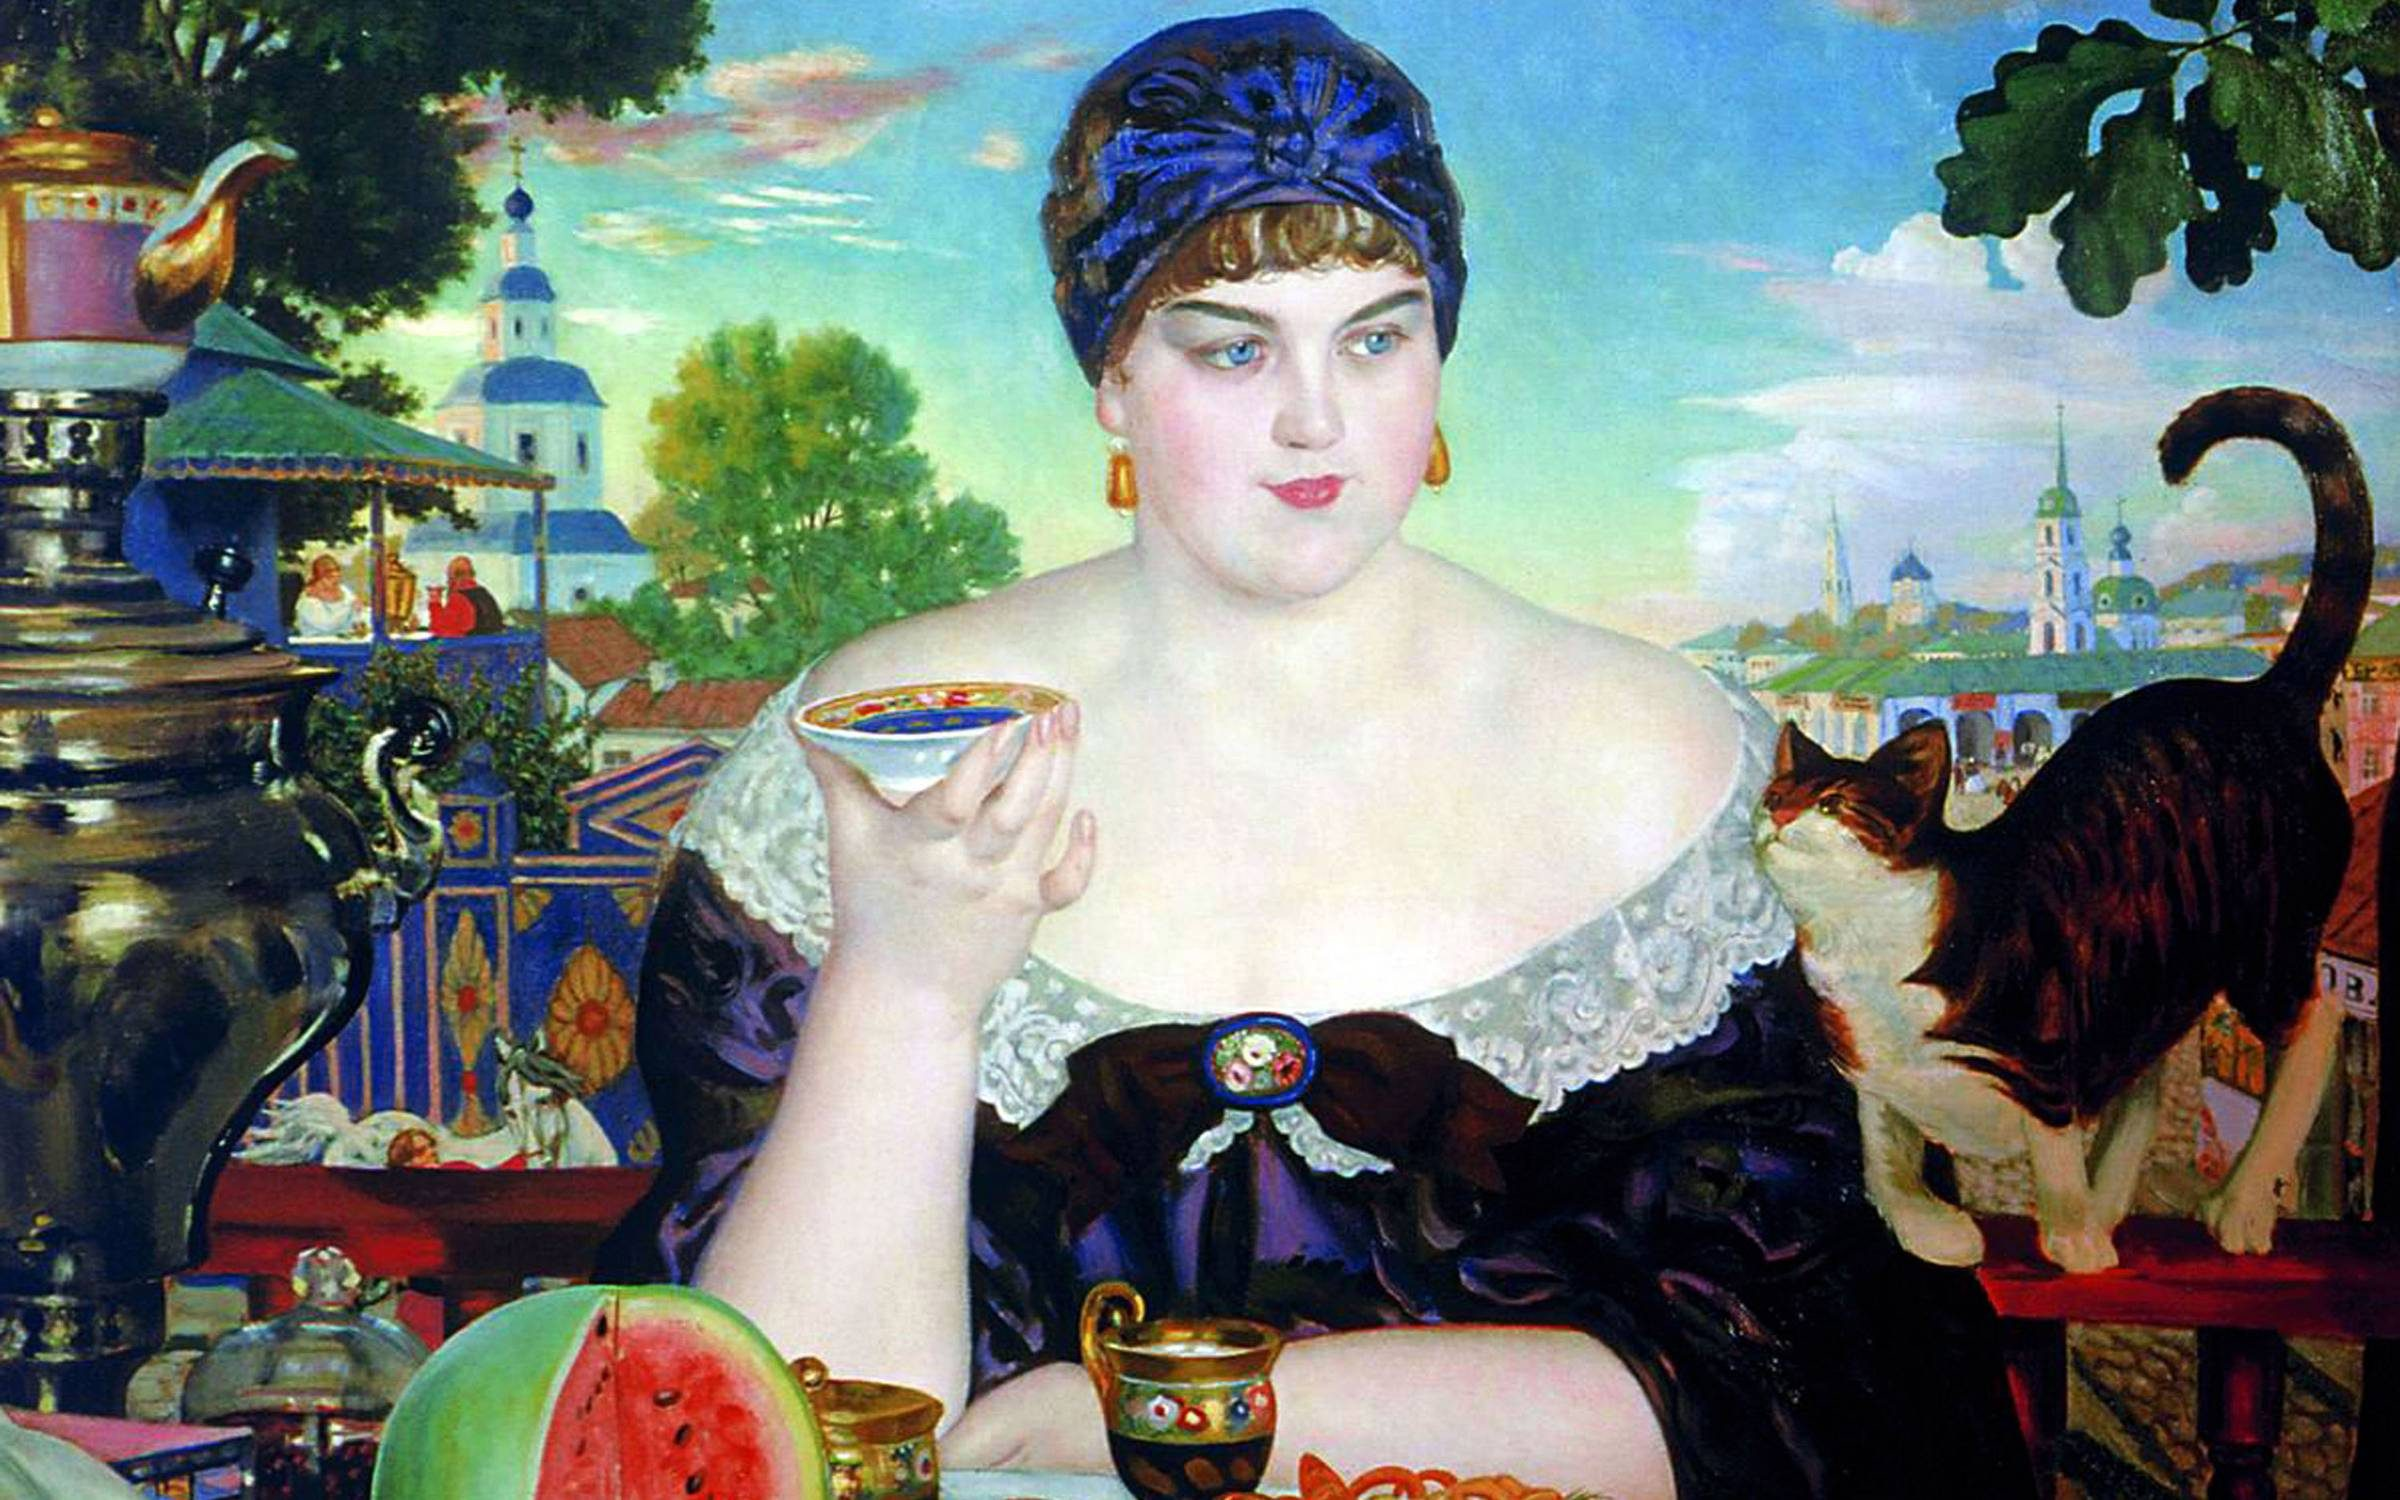 The Merchant's Wife', 1918. Oil on canvas. Boris Kustodiev (1878-1927). Credit: Universal History Archive/Getty Images